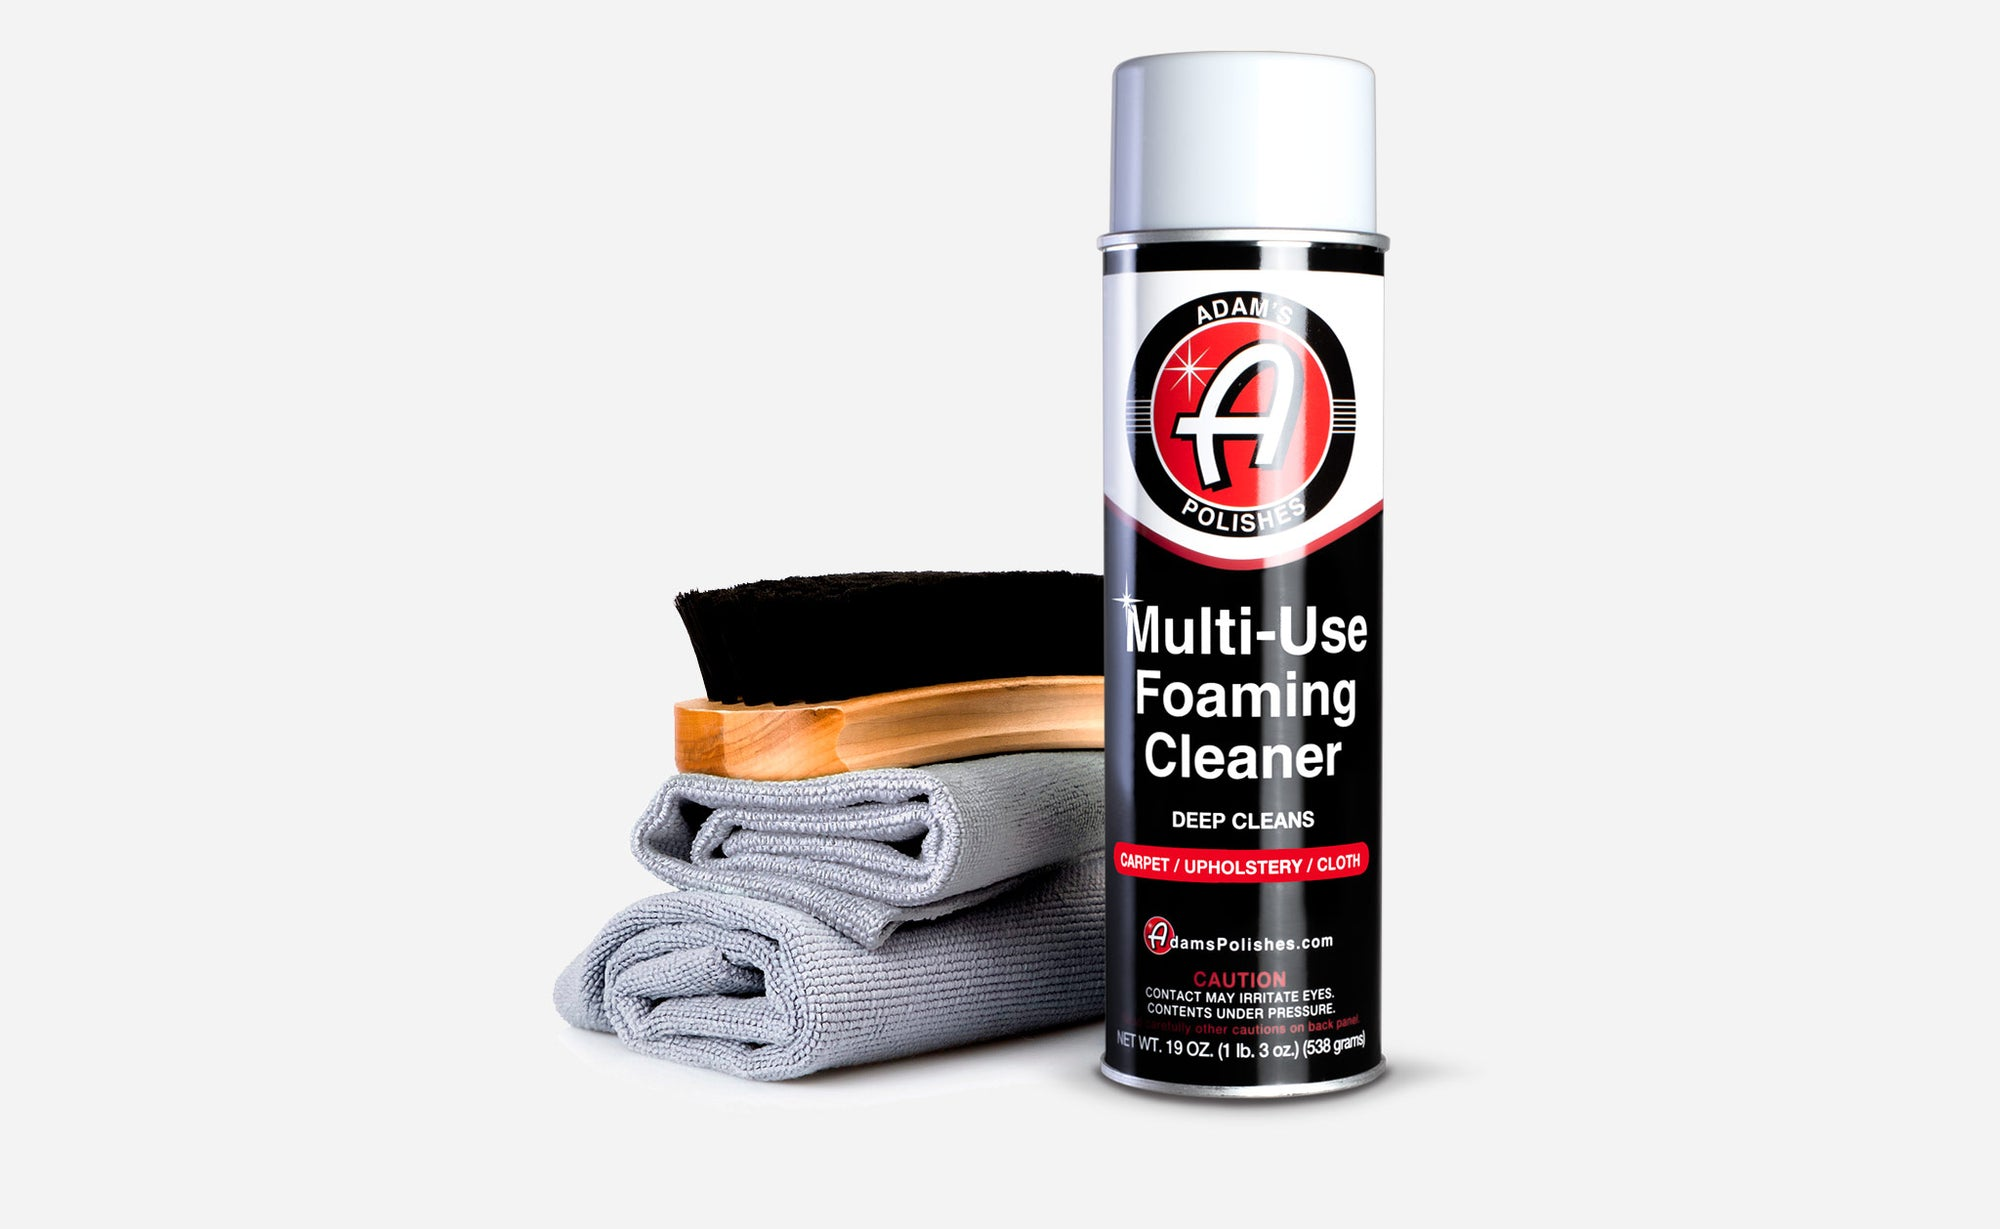 Adam's Multi-Use Foaming Cleaner Kit